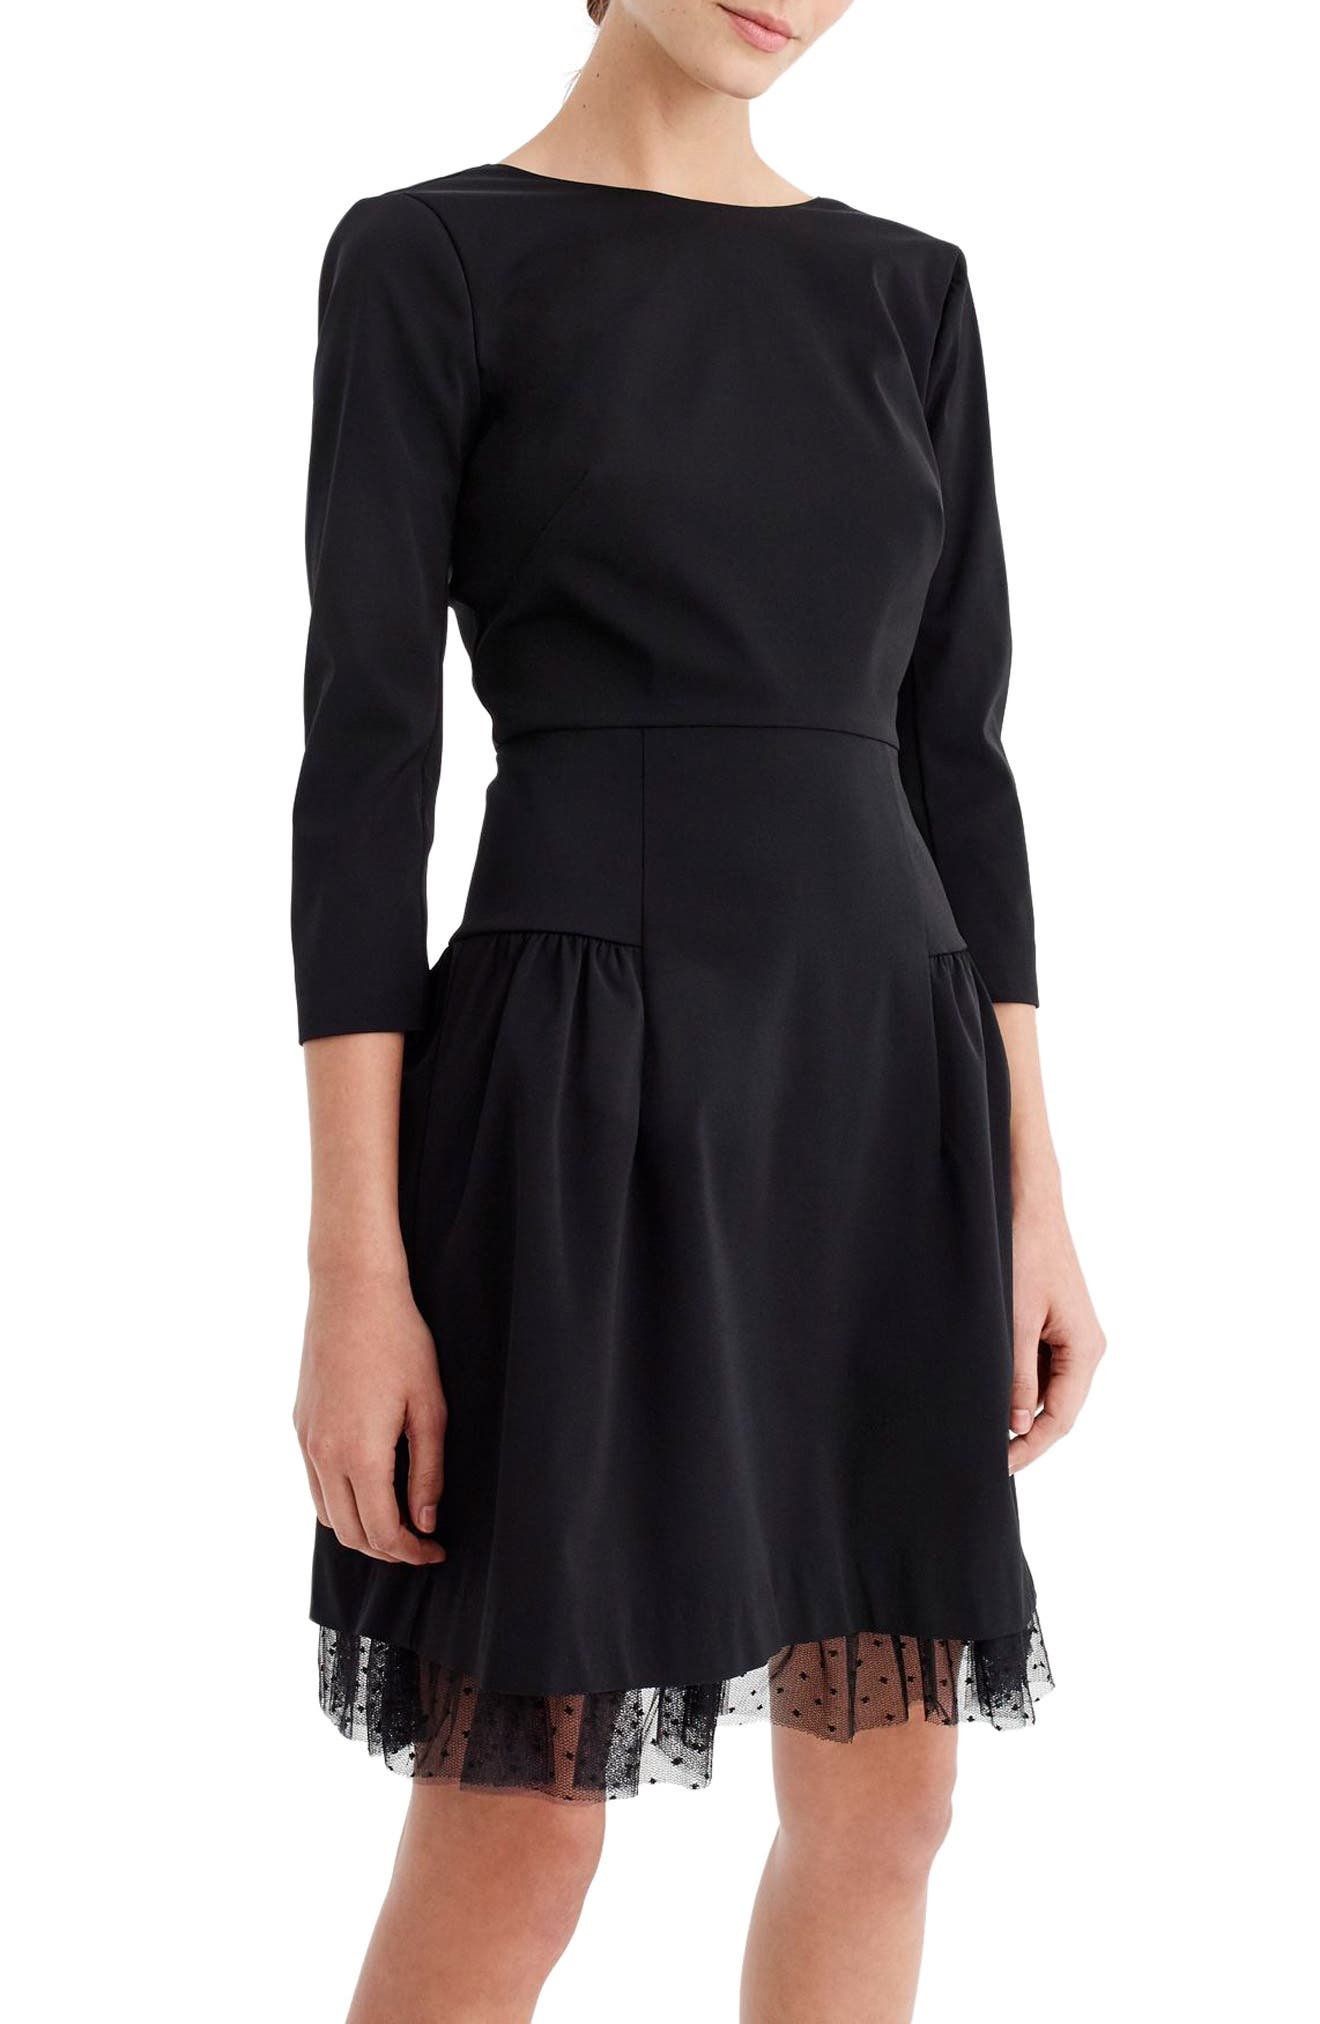 J.CREW, Tulle Hem Sheath Dress, Main thumbnail 1, color, 001